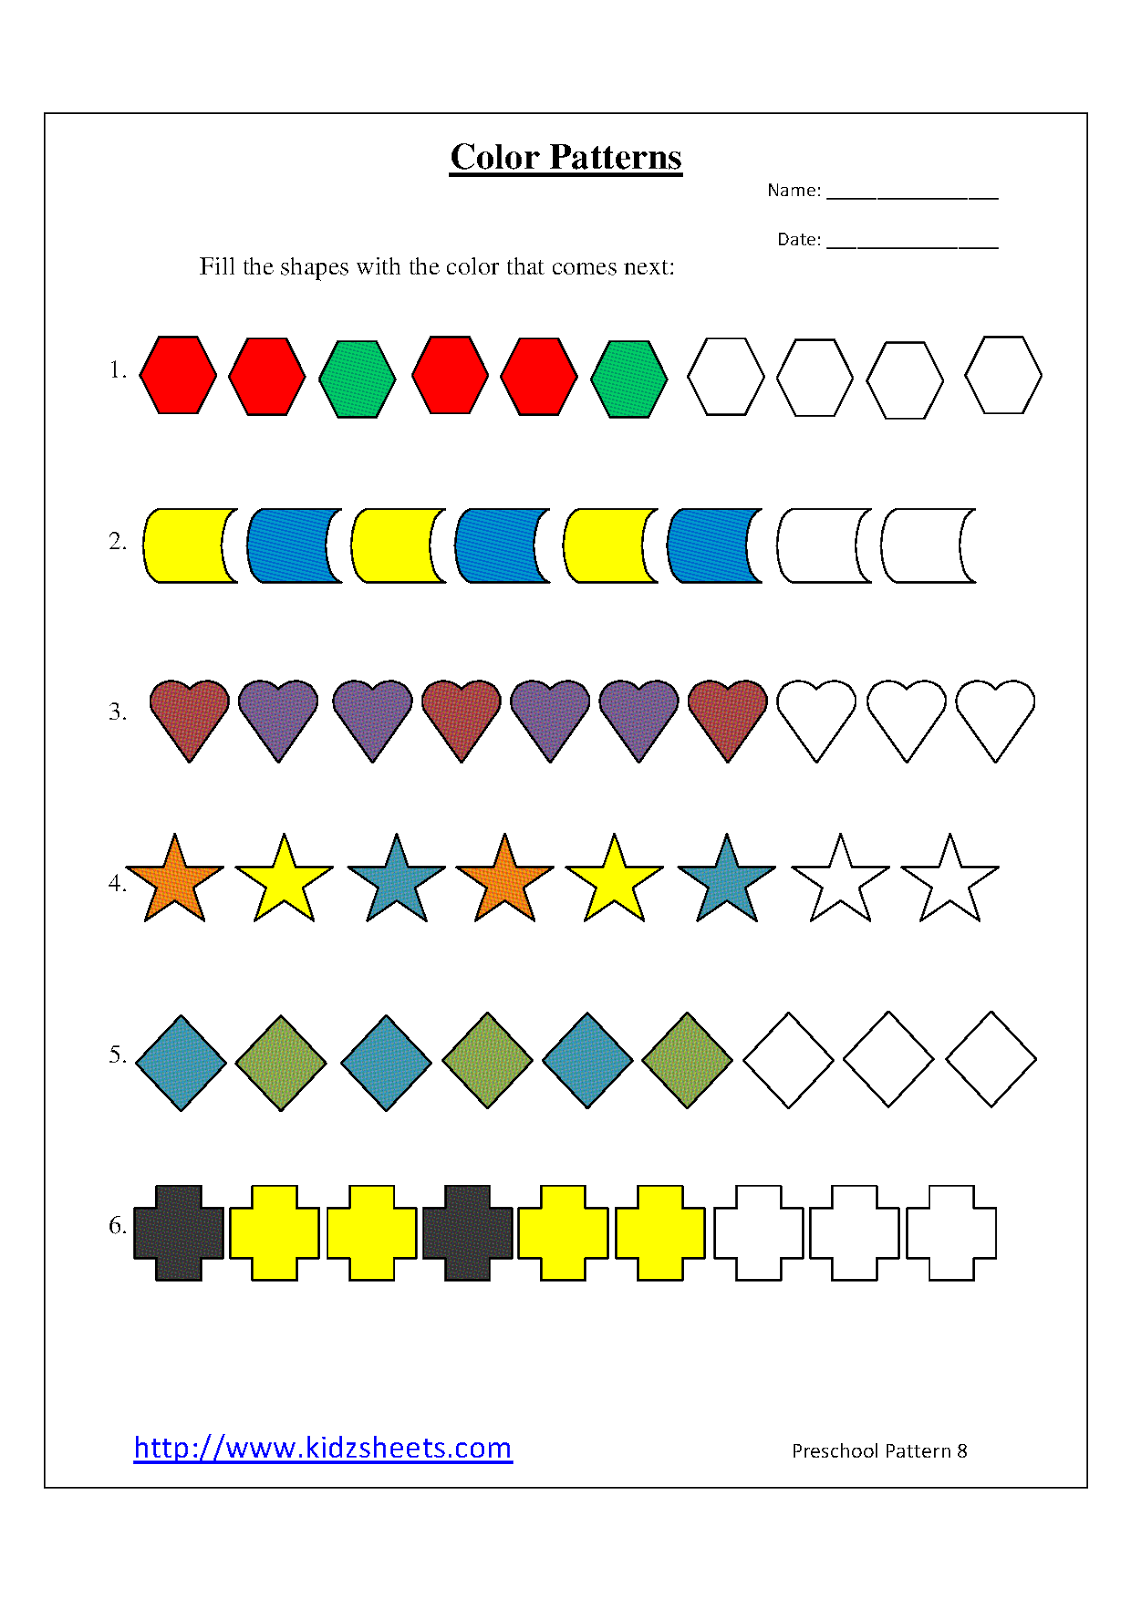 Worksheet Printable Patterns Worksheets kidz worksheets preschool color patterns worksheet8 patterns